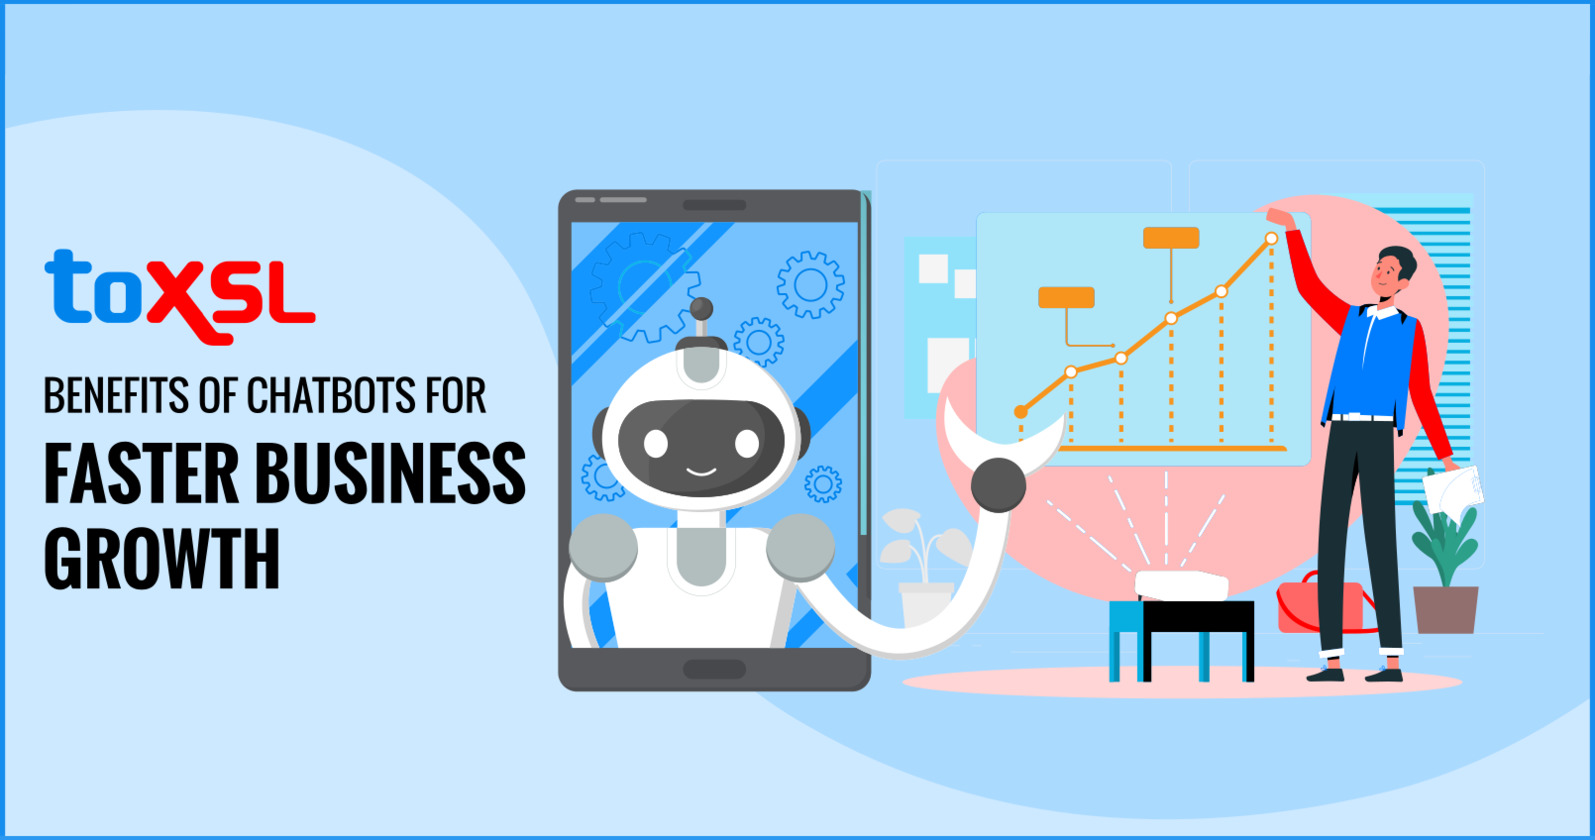 BENEFITS OF CHATBOTS FOR FASTER BUSINESS GROWTH